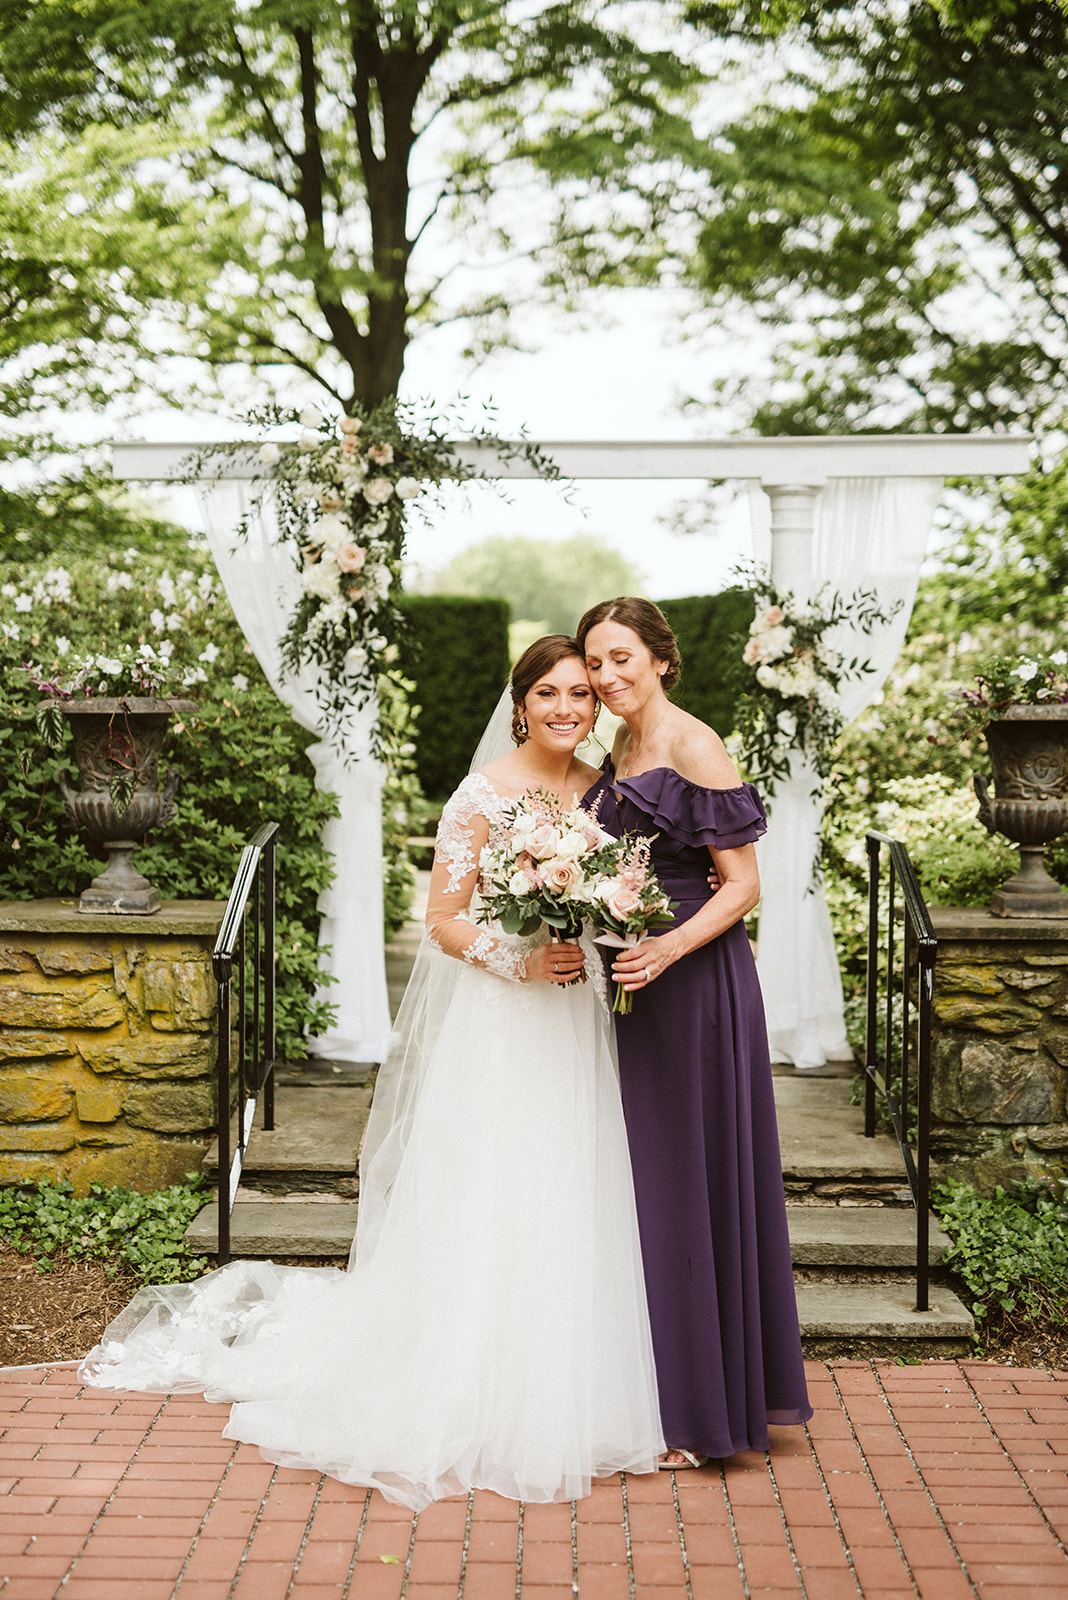 Jana and her mother after her wedding ceremony at Drumore Estate.